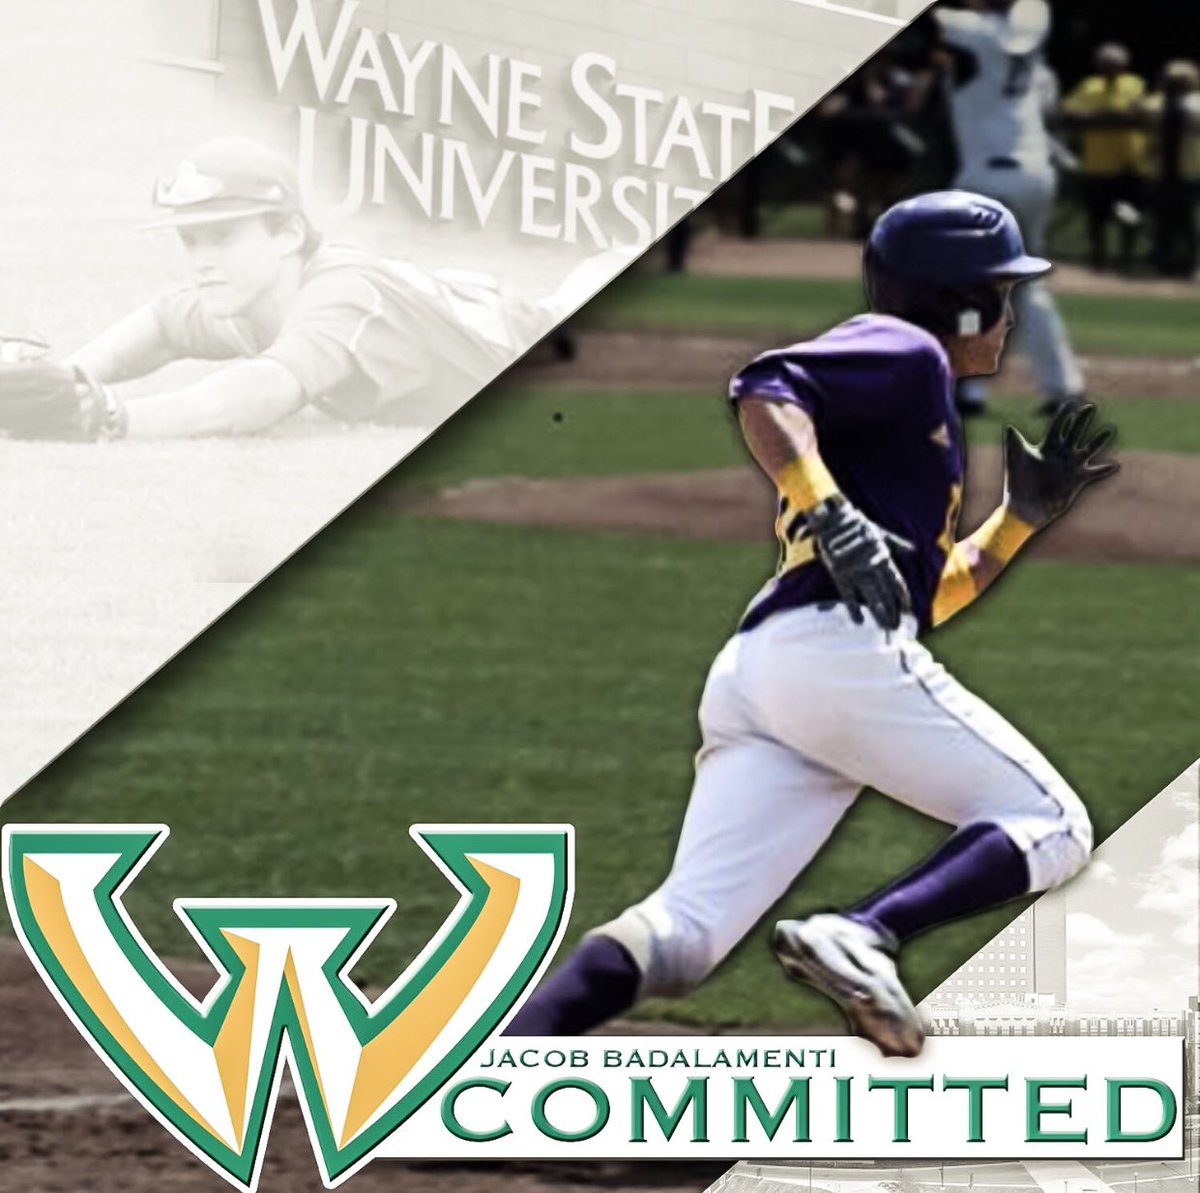 Blessed to announce my commitment to play baseball and further my education at Wayne State University! #GoWarriors 🔰